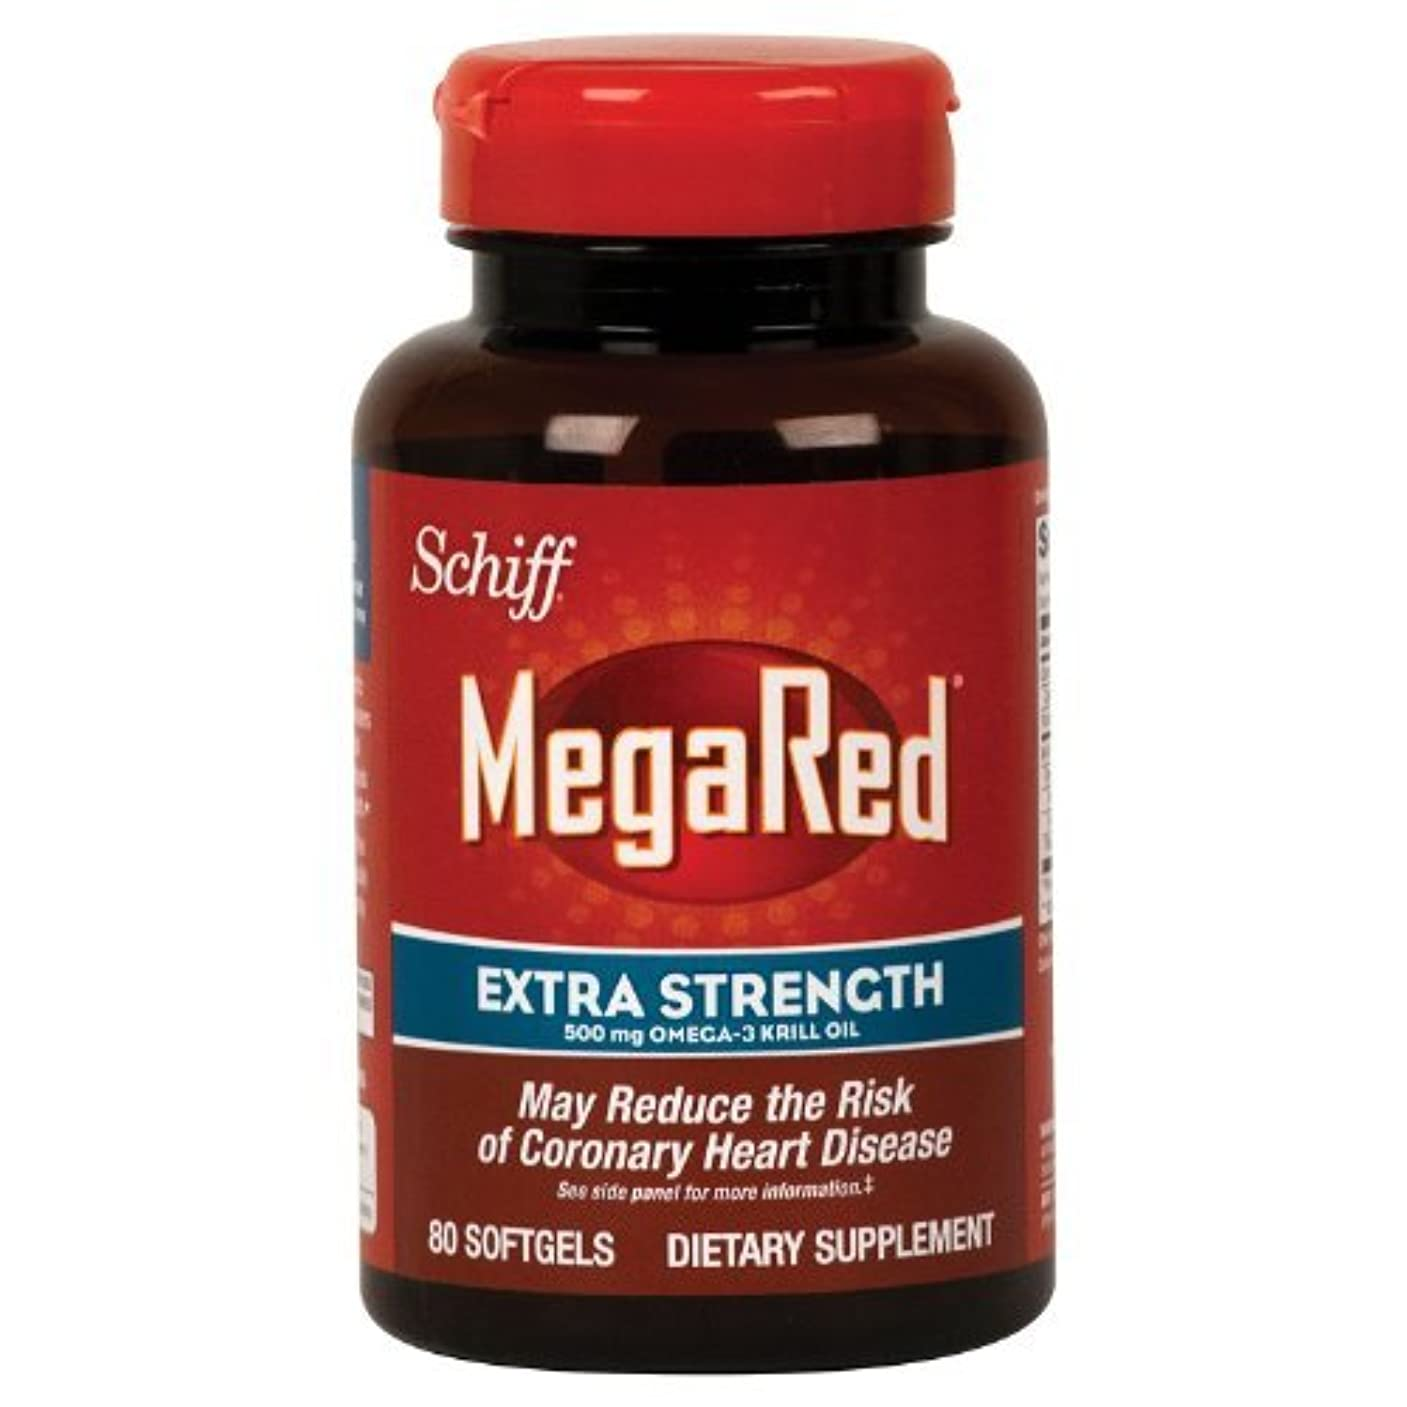 あなたのもの過ちメンタルSchiff Megared Extra Strength 500mg Omega-3 Krill Oil - 80 Softgels by Simply Right [並行輸入品]